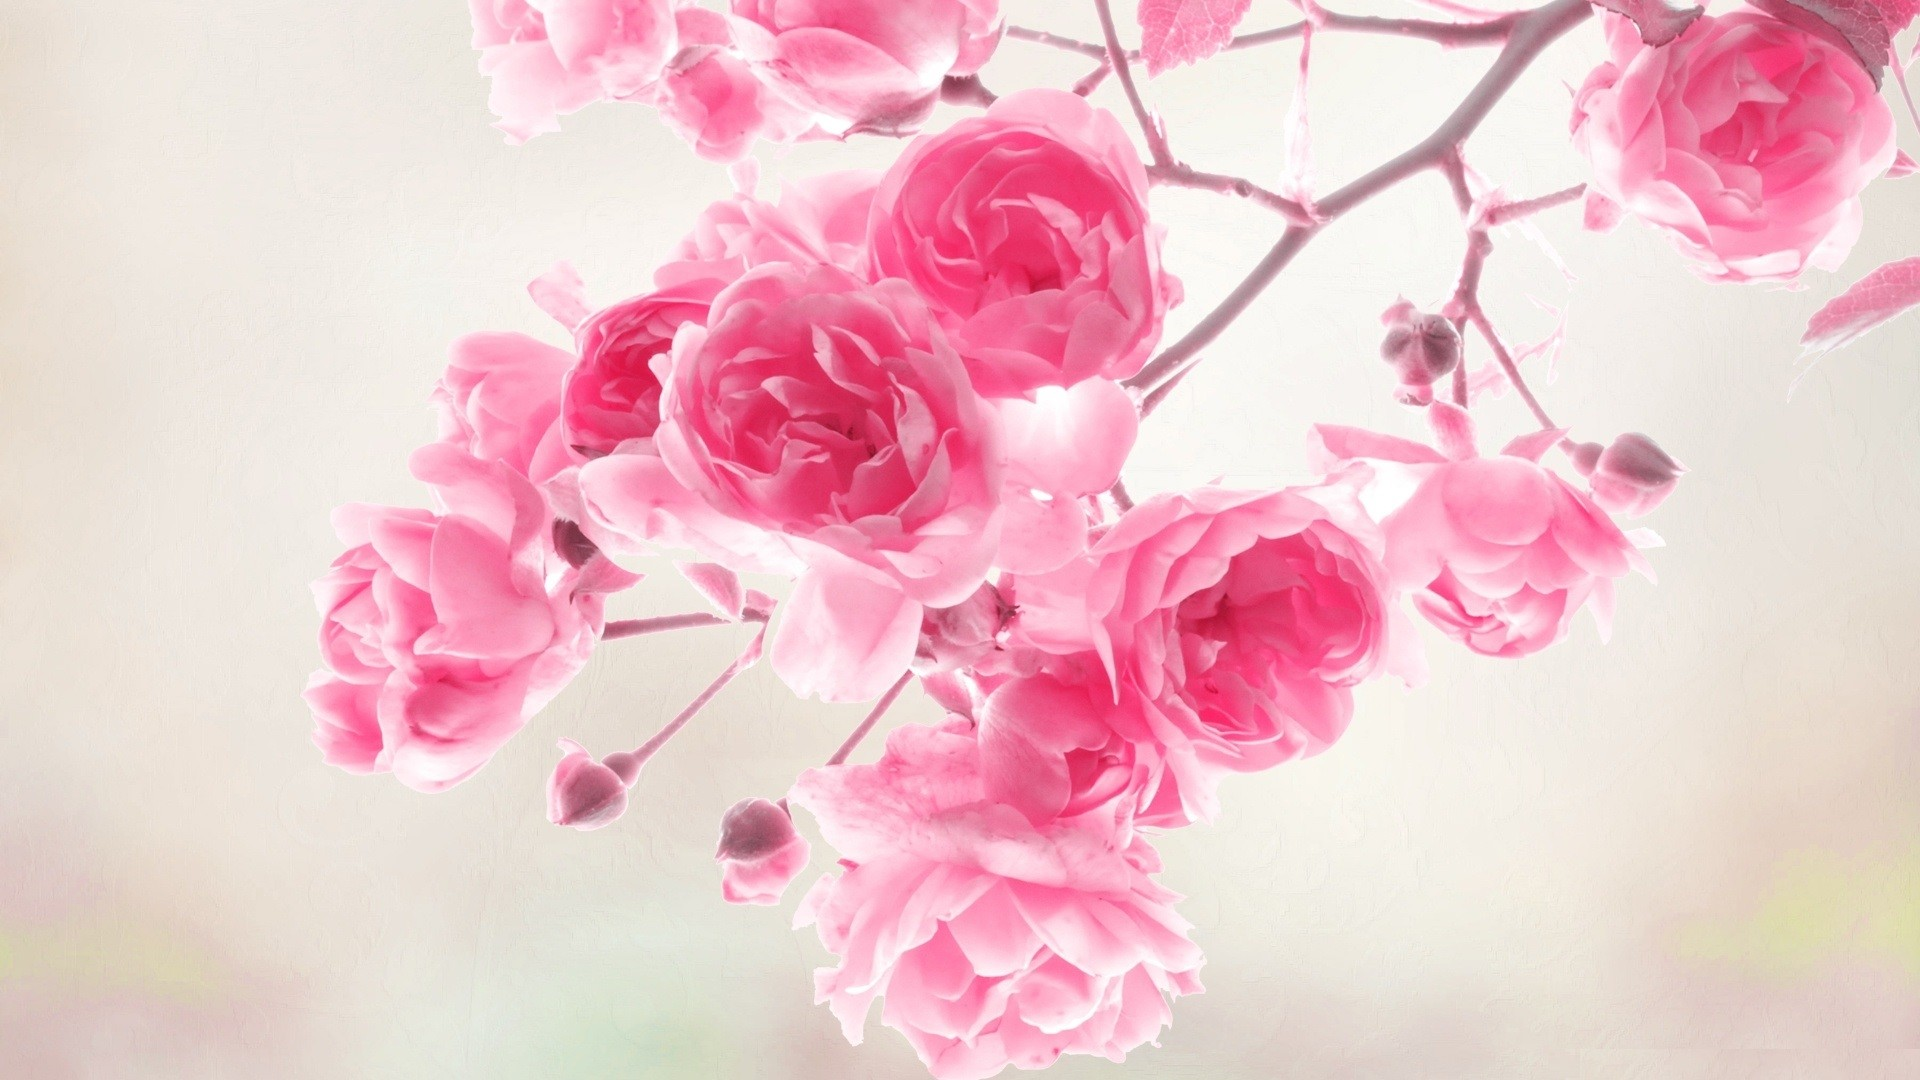 Res: 1920x1080, Wallpaper Hd For Best Peach Flower Images Flowers Background High Quality  Mobile Full Desktop